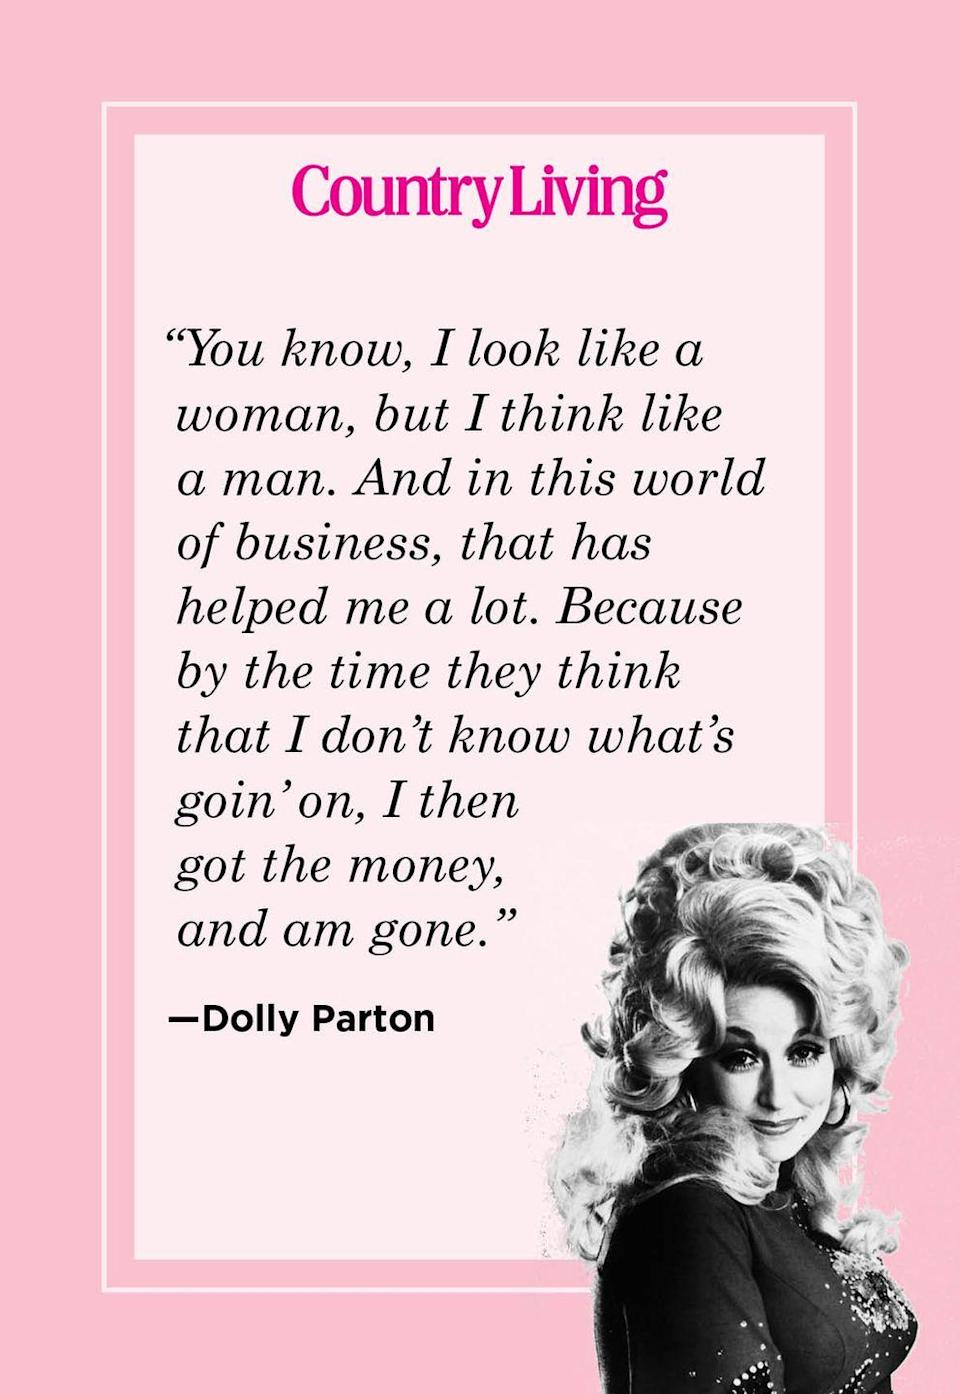 "<p>""You know, I look like a woman, but I think like a man. And in this world of business, that has helped me a lot. Because by the time they think that I don't know what's goin' on, I then got the money, and am gone.""</p>"